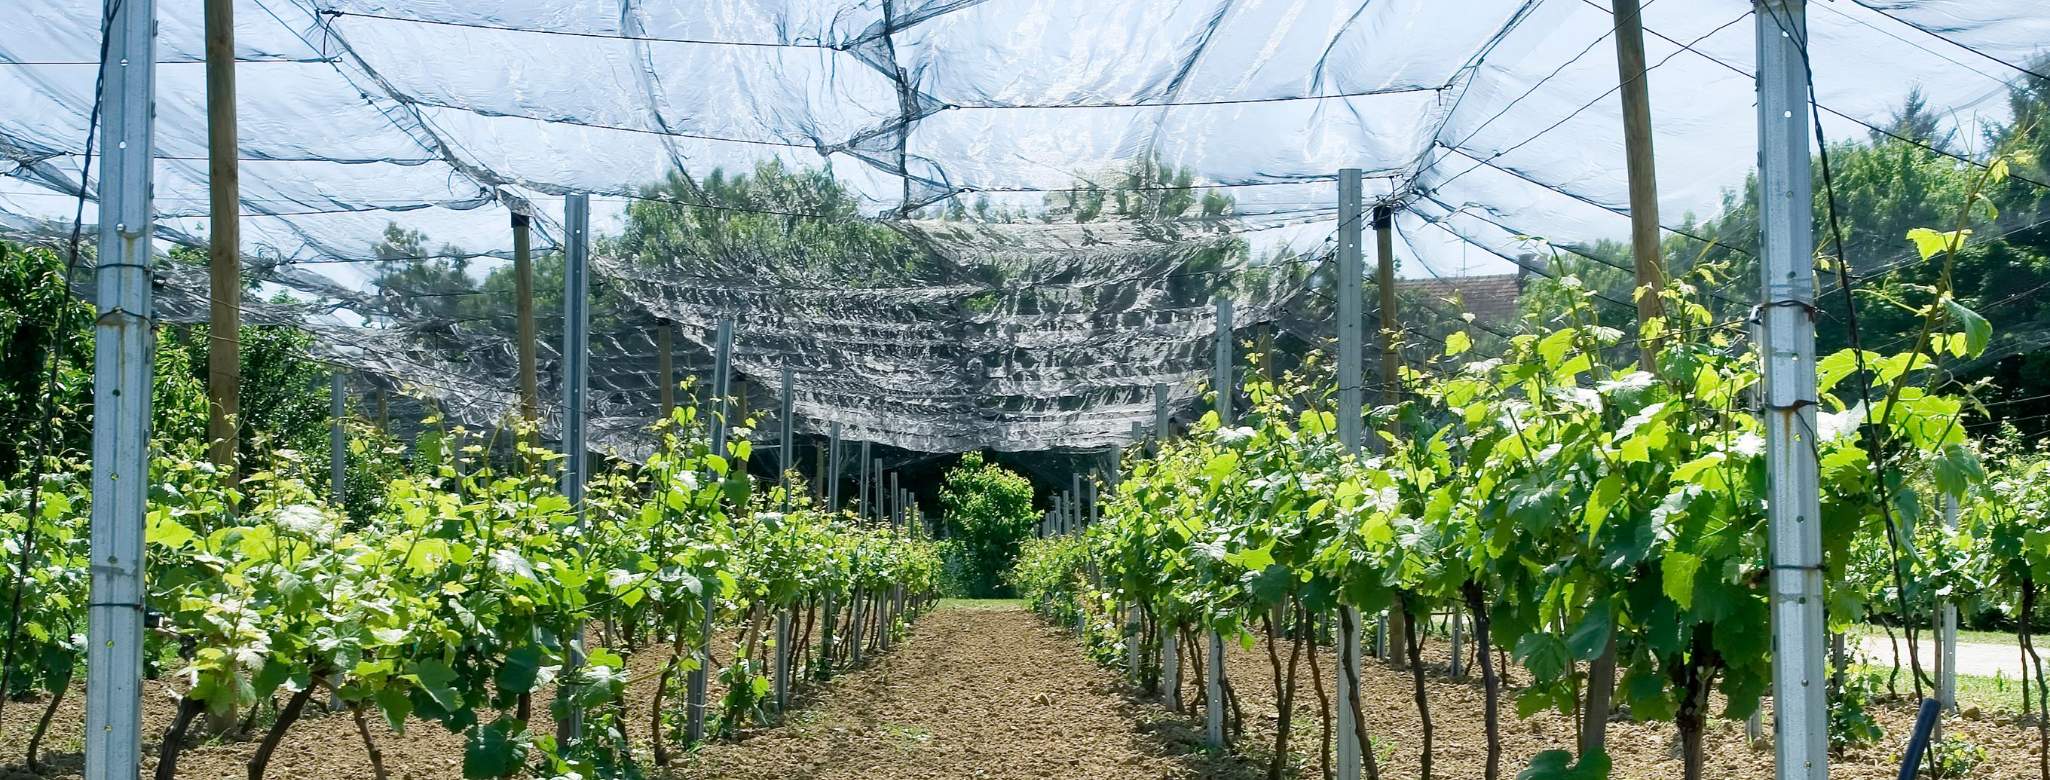 bird netting installed for vineyards